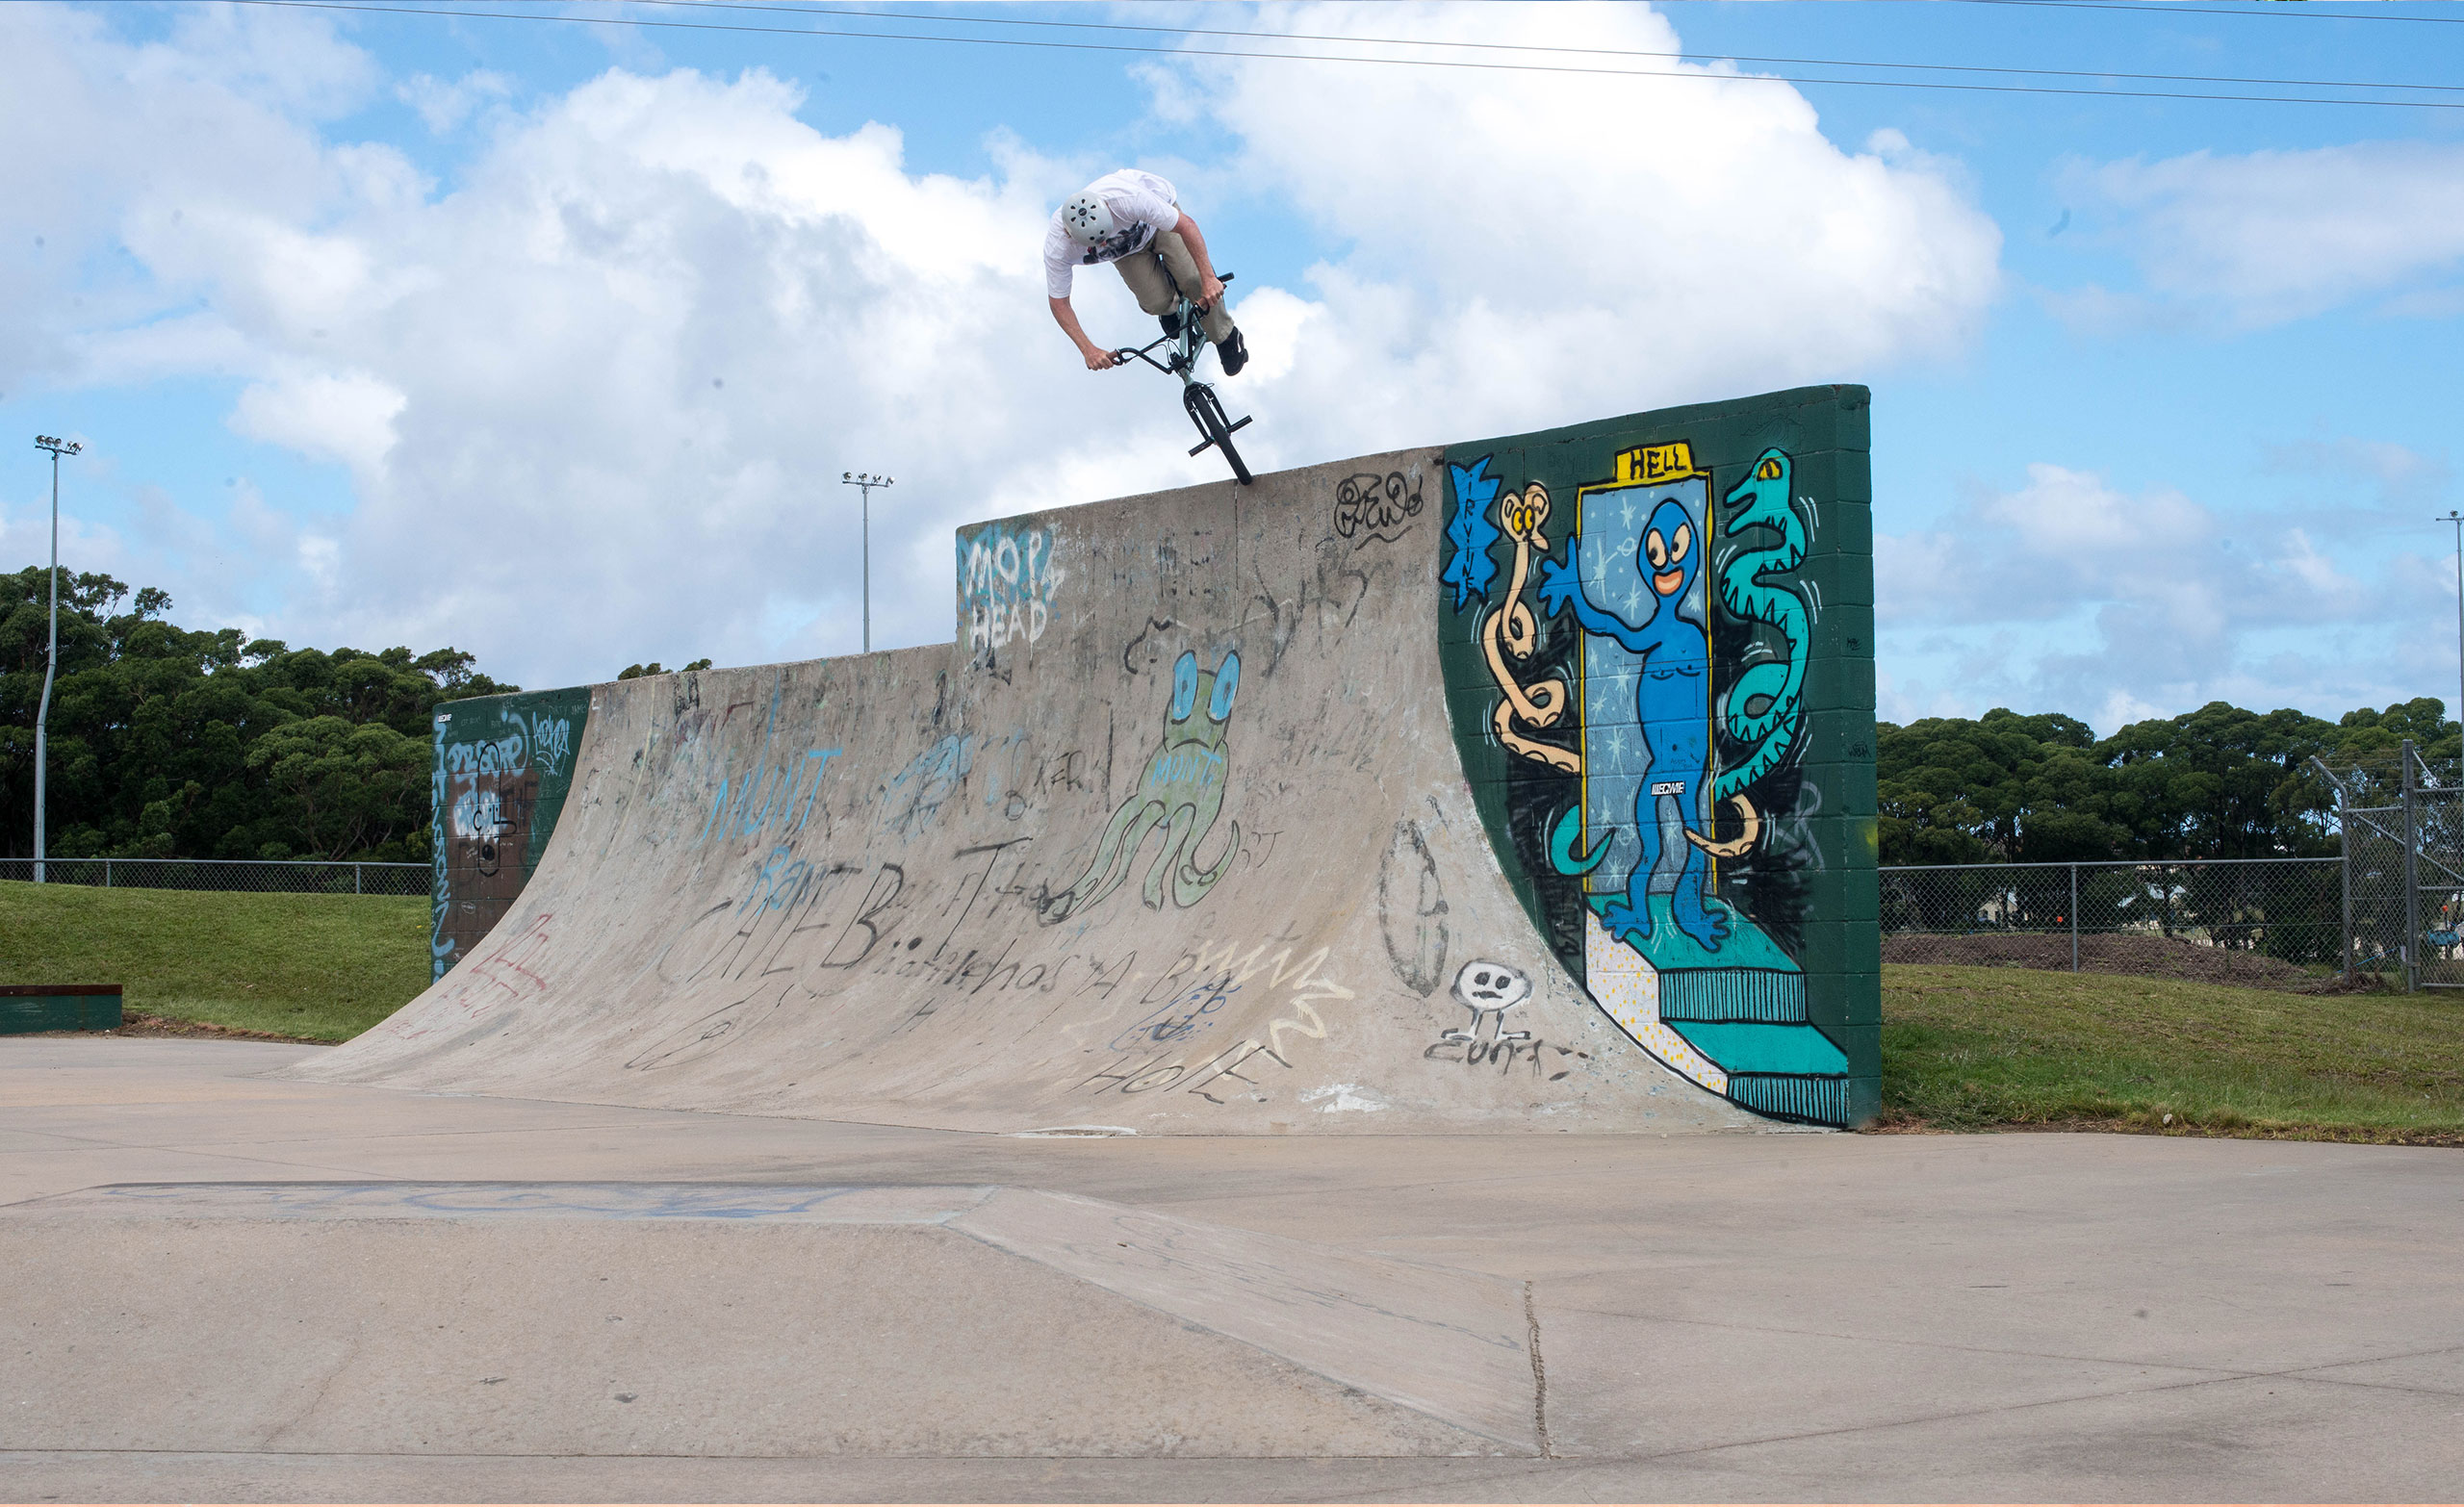 I told Clint we would shoot this photo well before the trip even started, Ulladulla vert wall had his name all over it